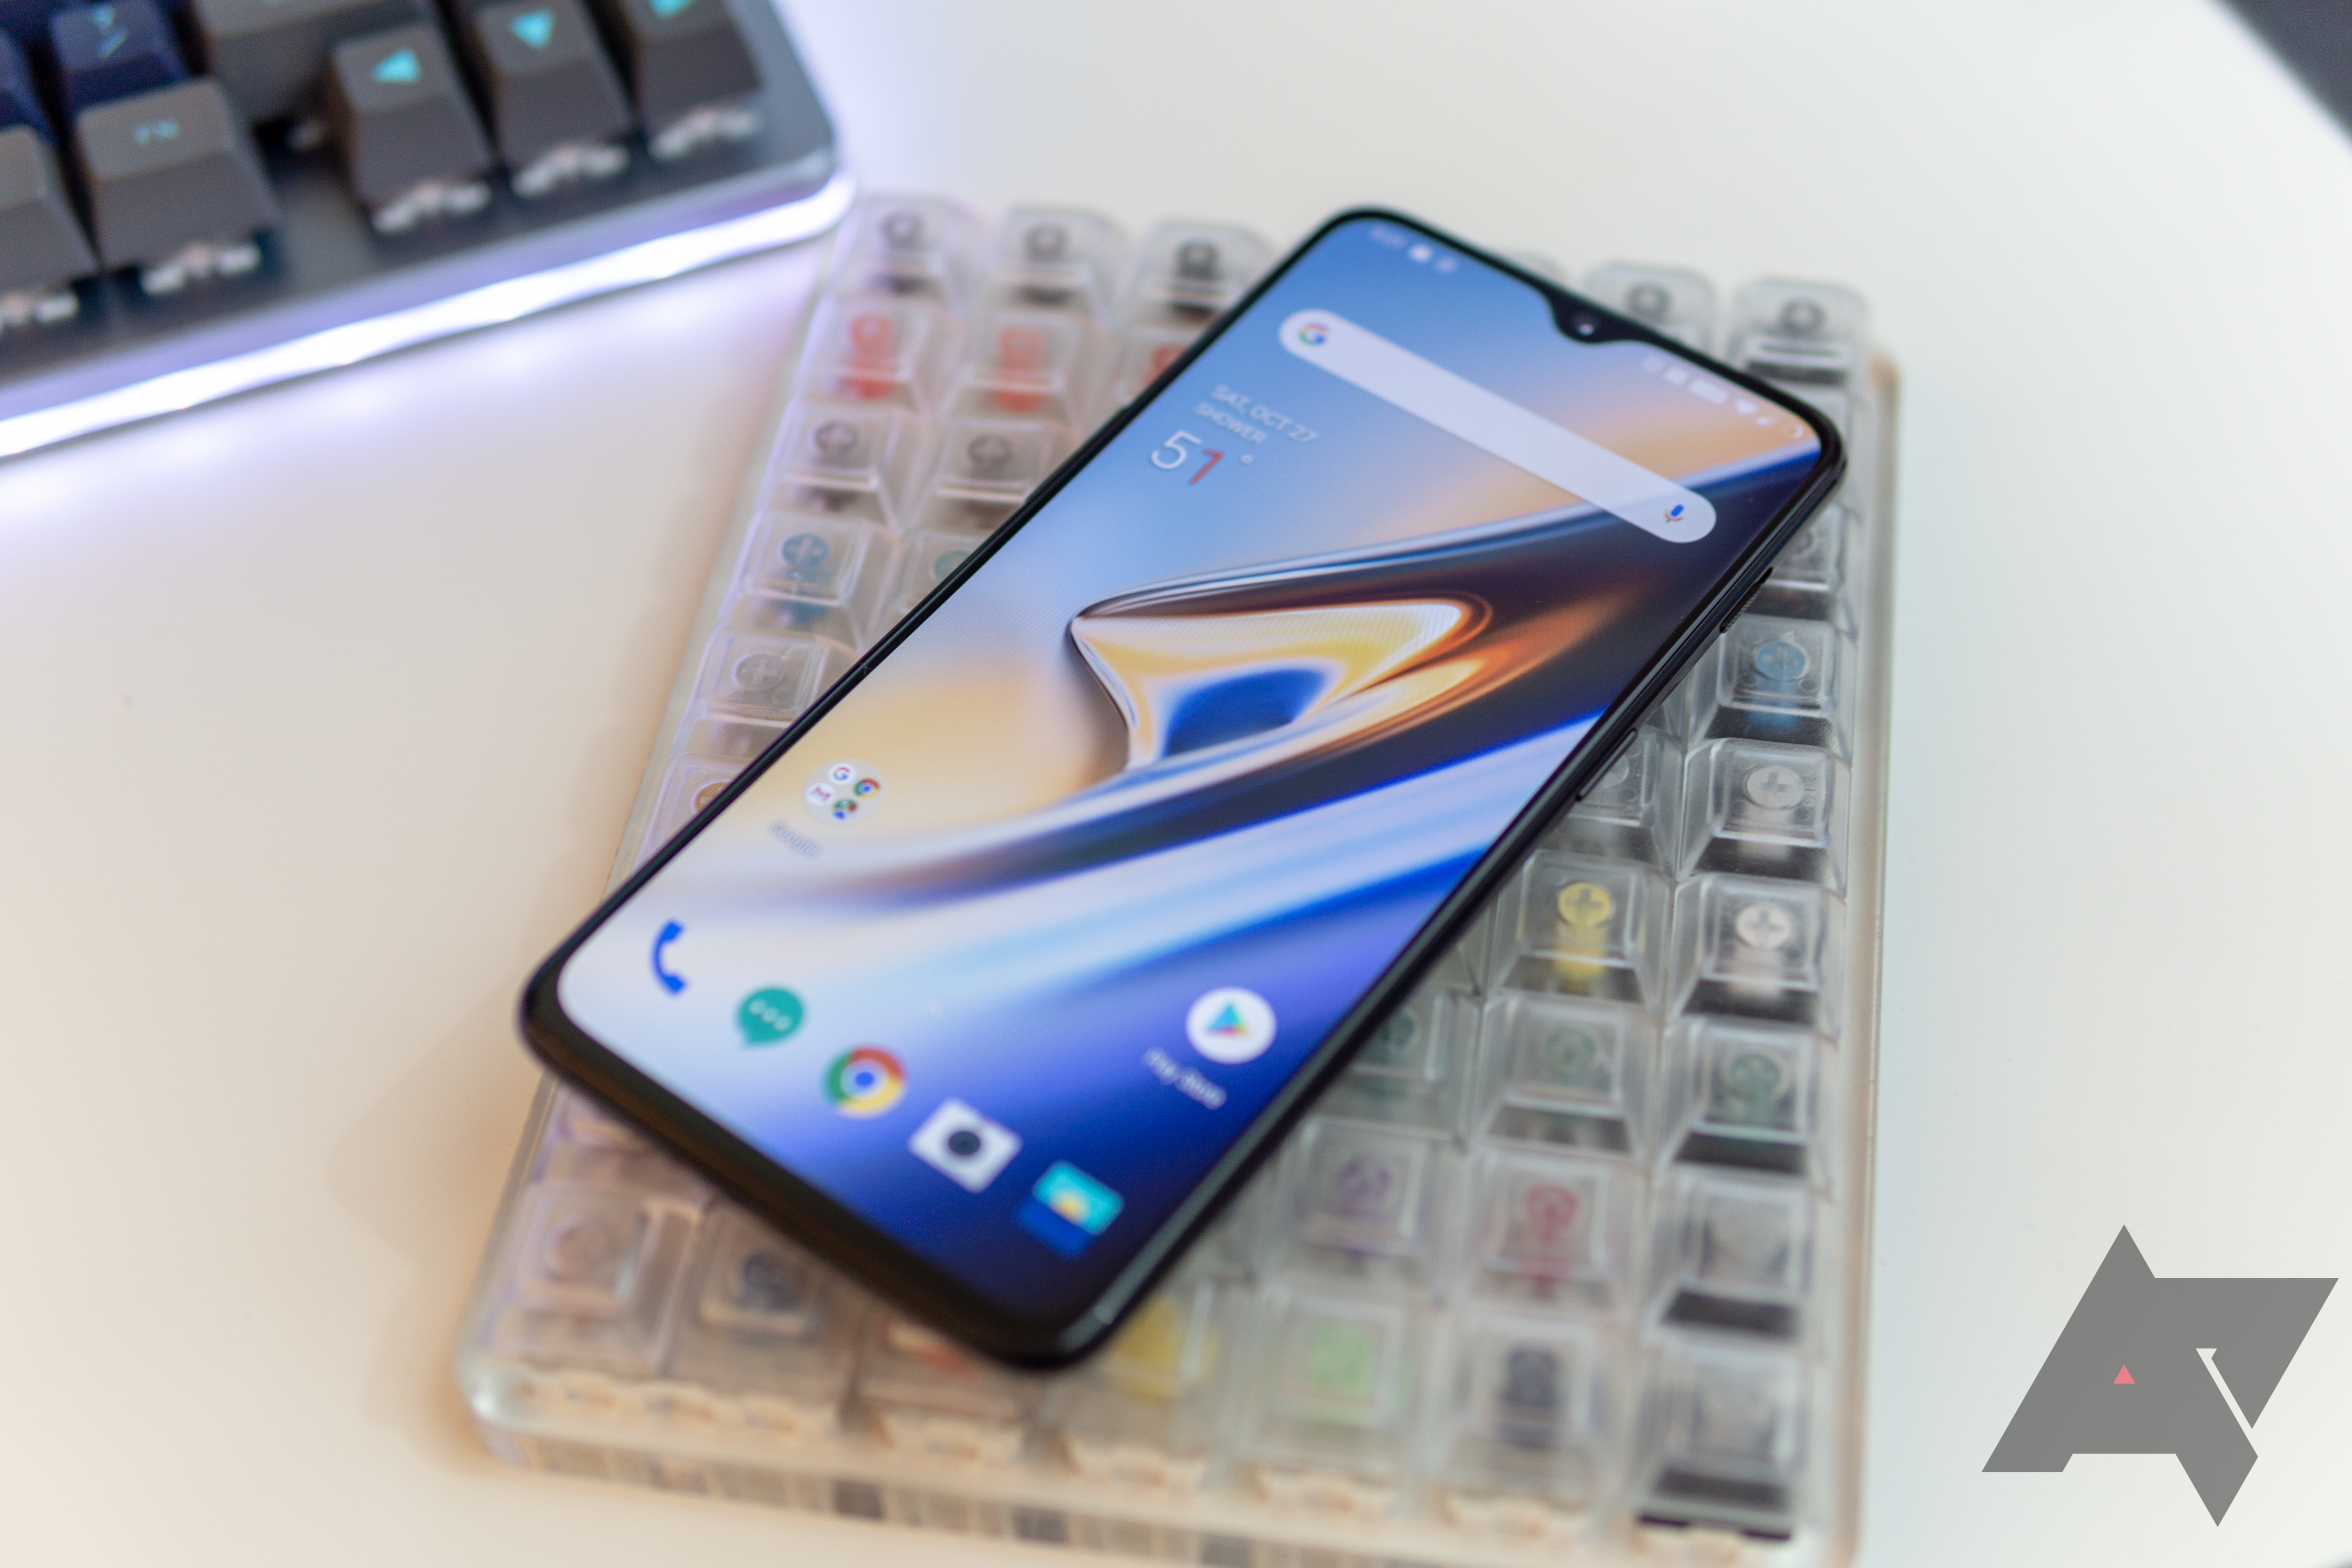 OnePlus 6T kernel source code is now available